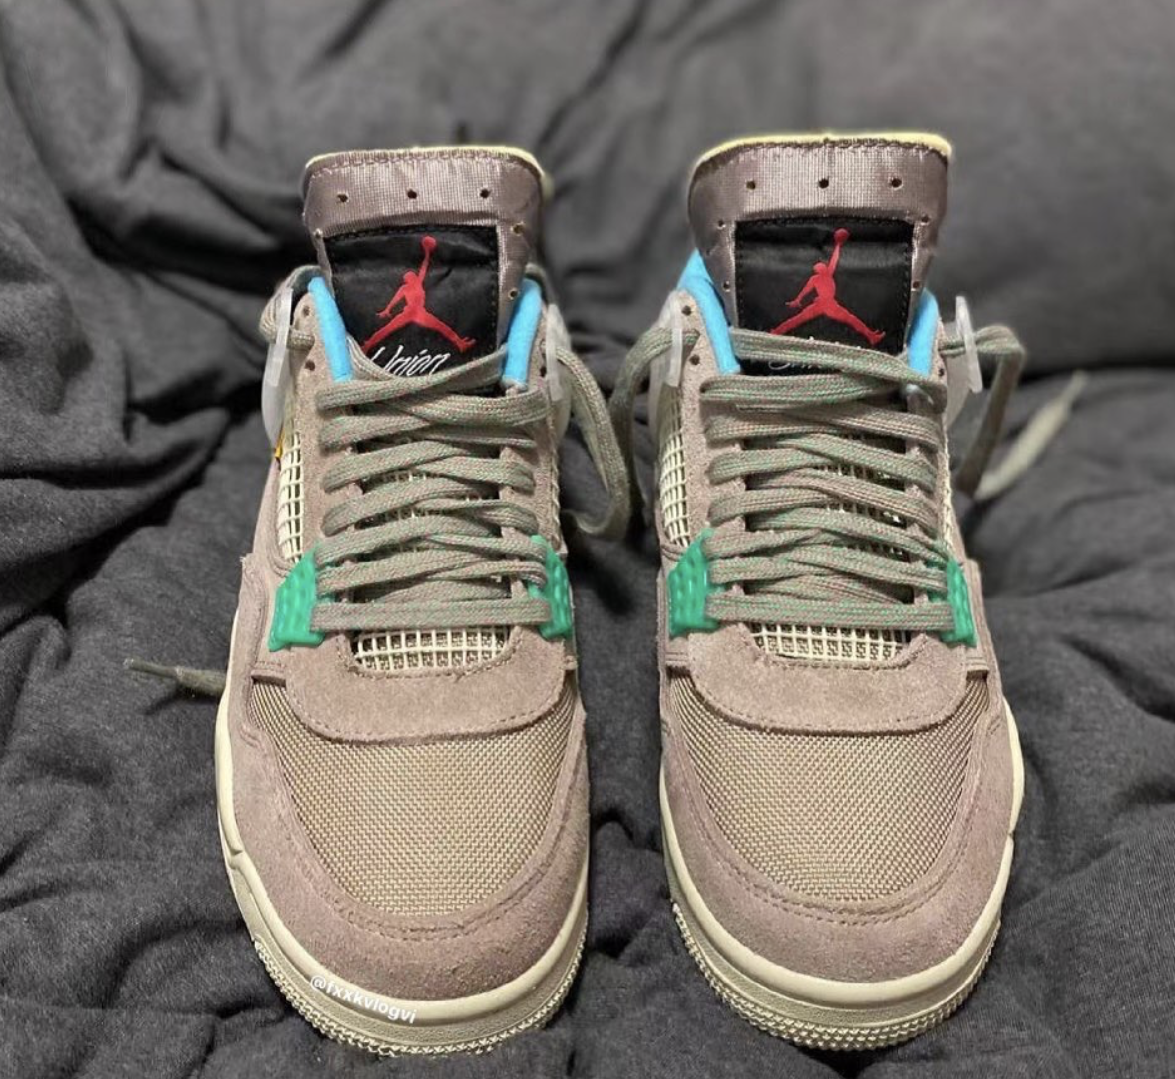 Union x Air Jordan 4 Taupe Haze DJ5718-242 Release